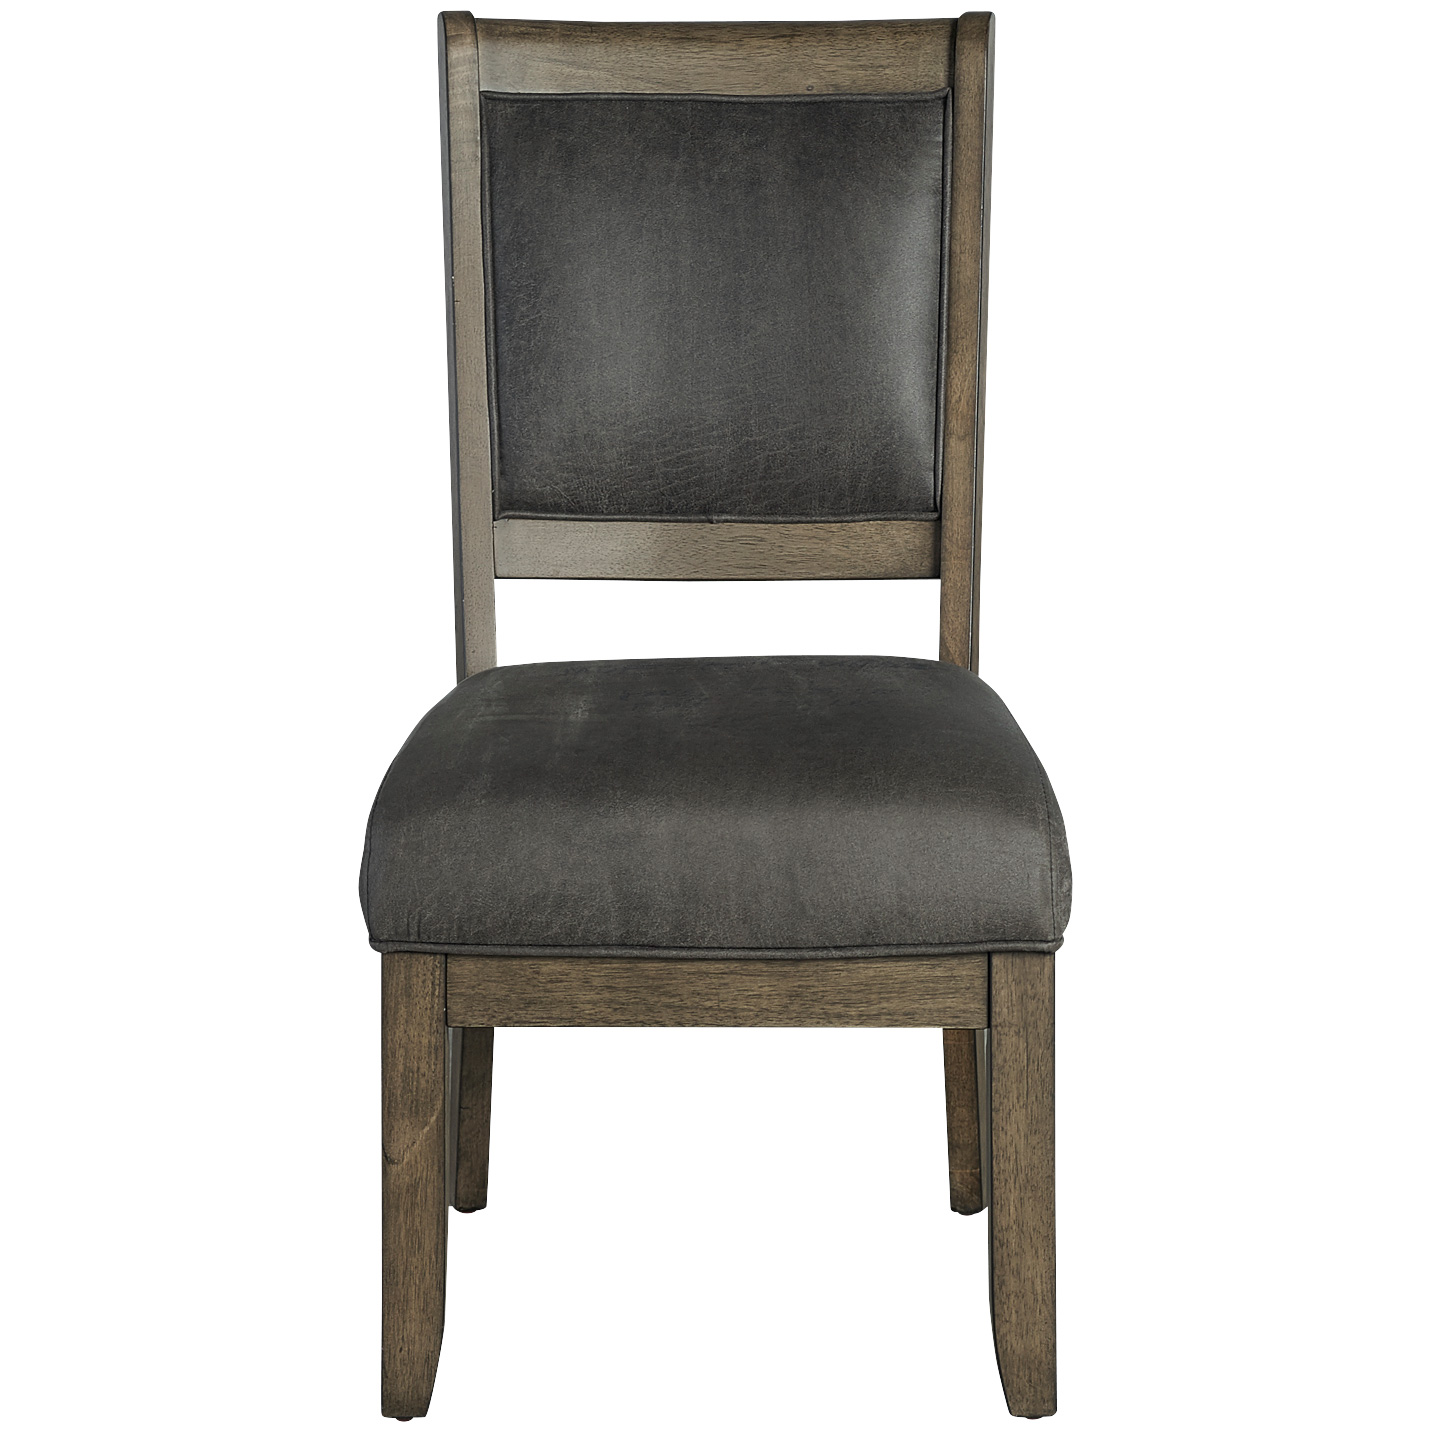 Whalen Furniture | Lawton Rustic Brown Upholstered Side Chair